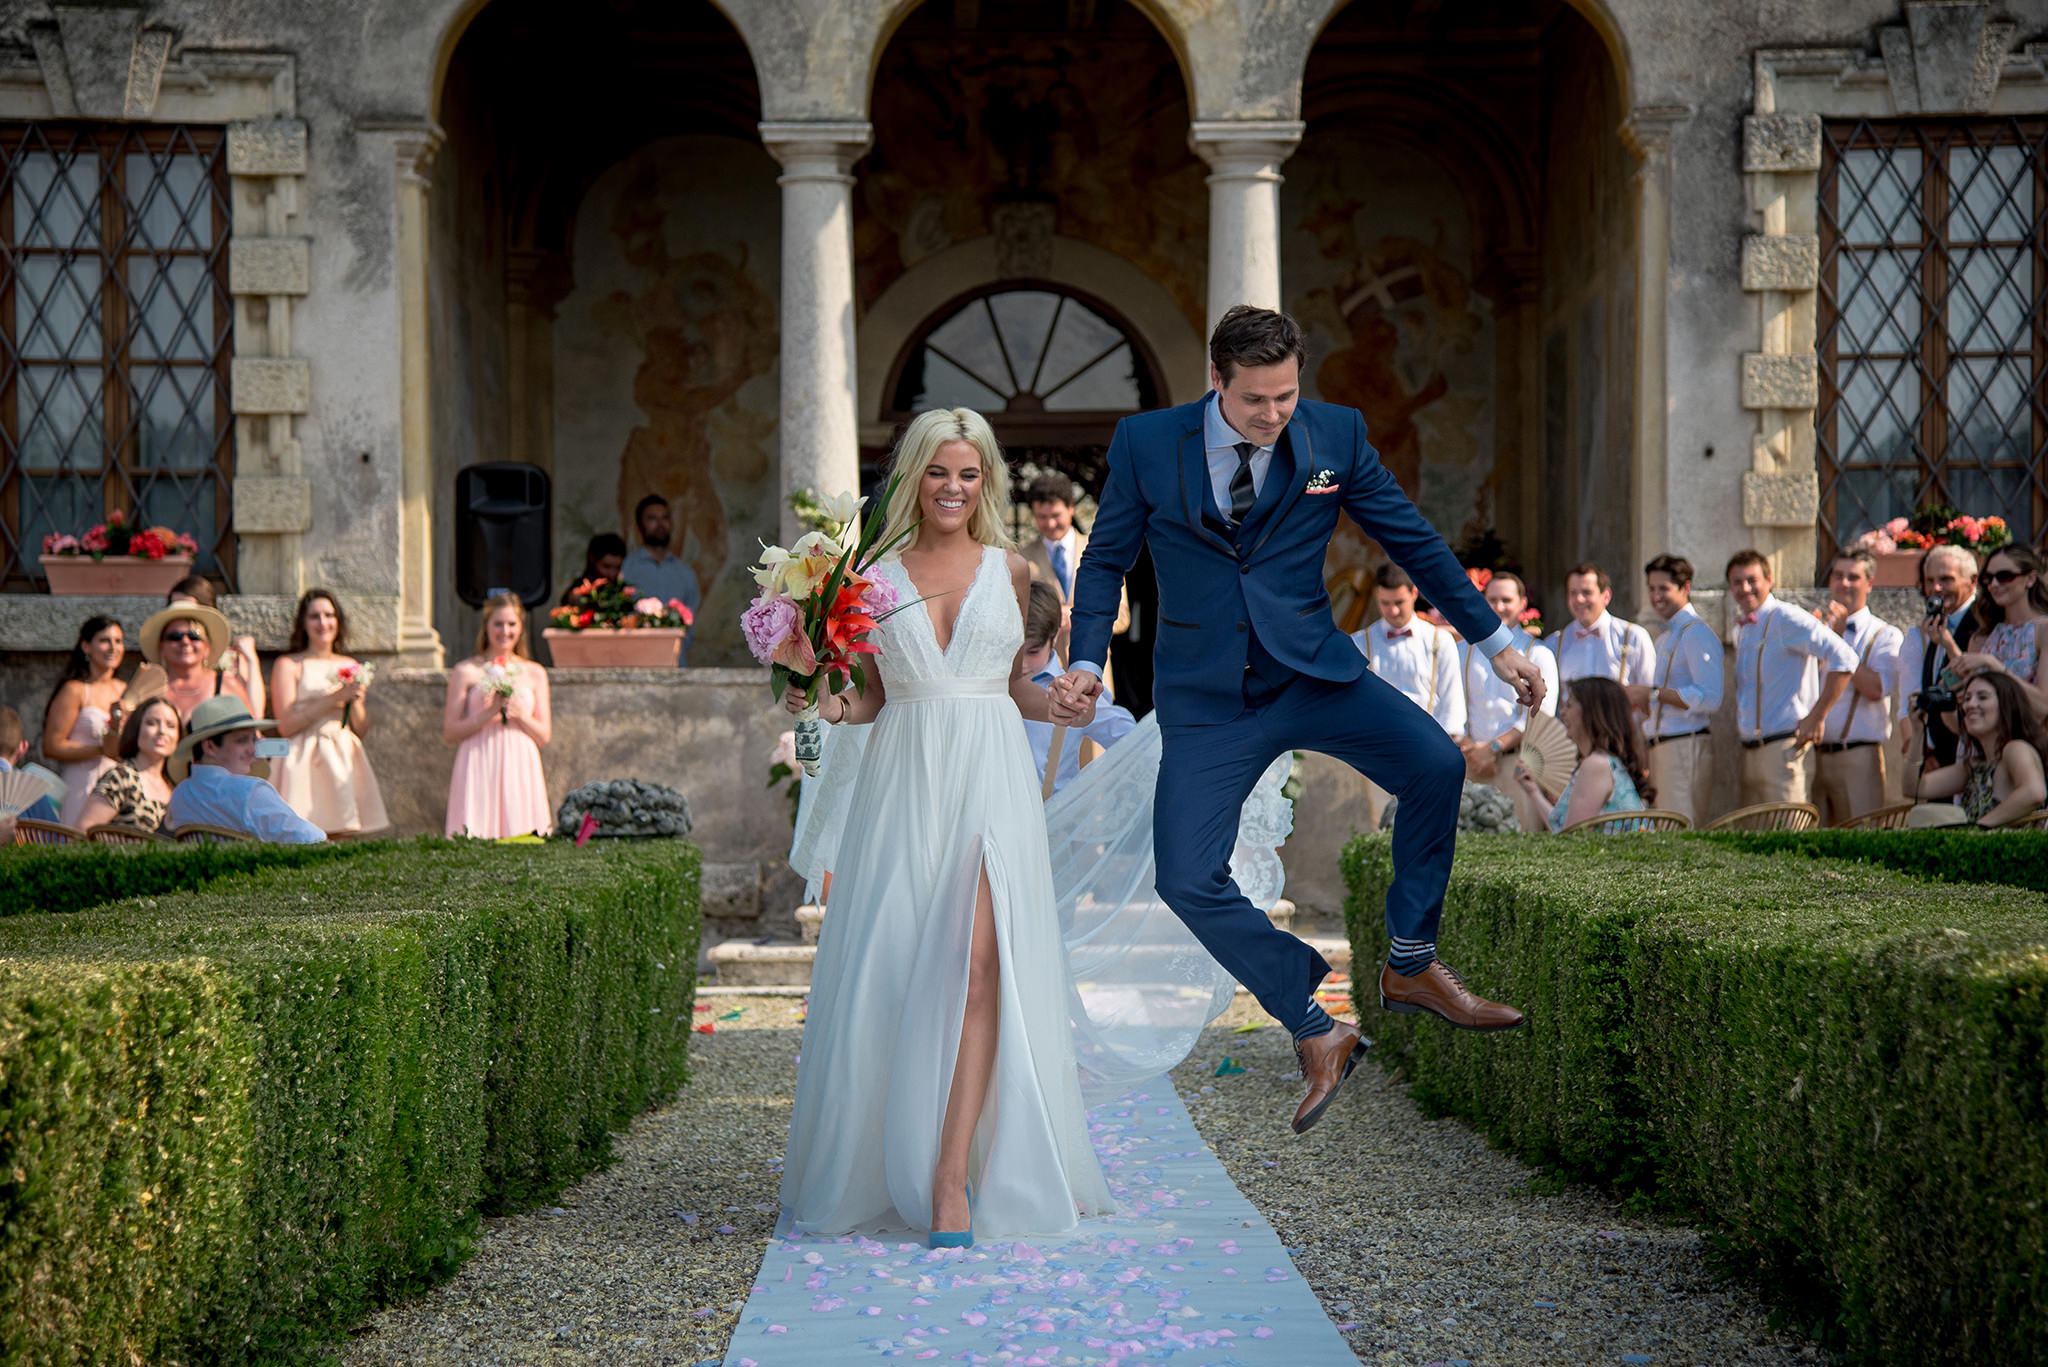 Villa Zambonina - Destination Weddings in Italy - Studio 22 Photography